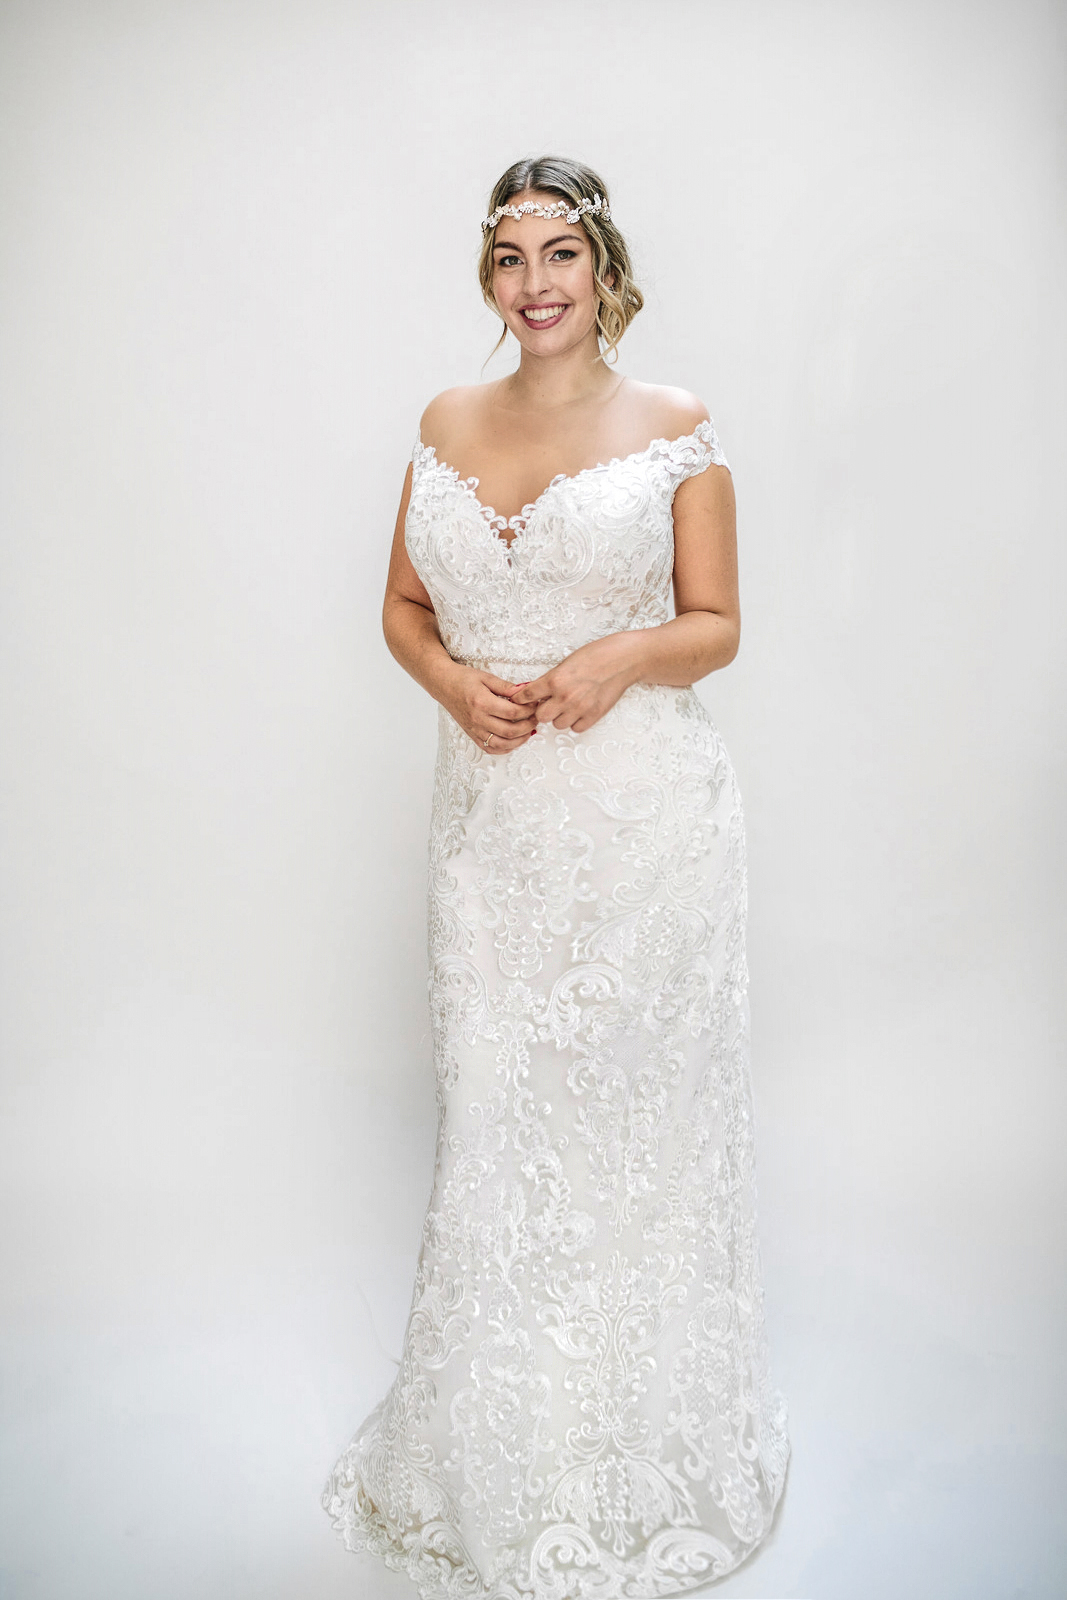 FASHION FRIDAY   New Collection Just for Indie Curvy Brides Arrives at Lovely Bride   Pretty Pear Bride